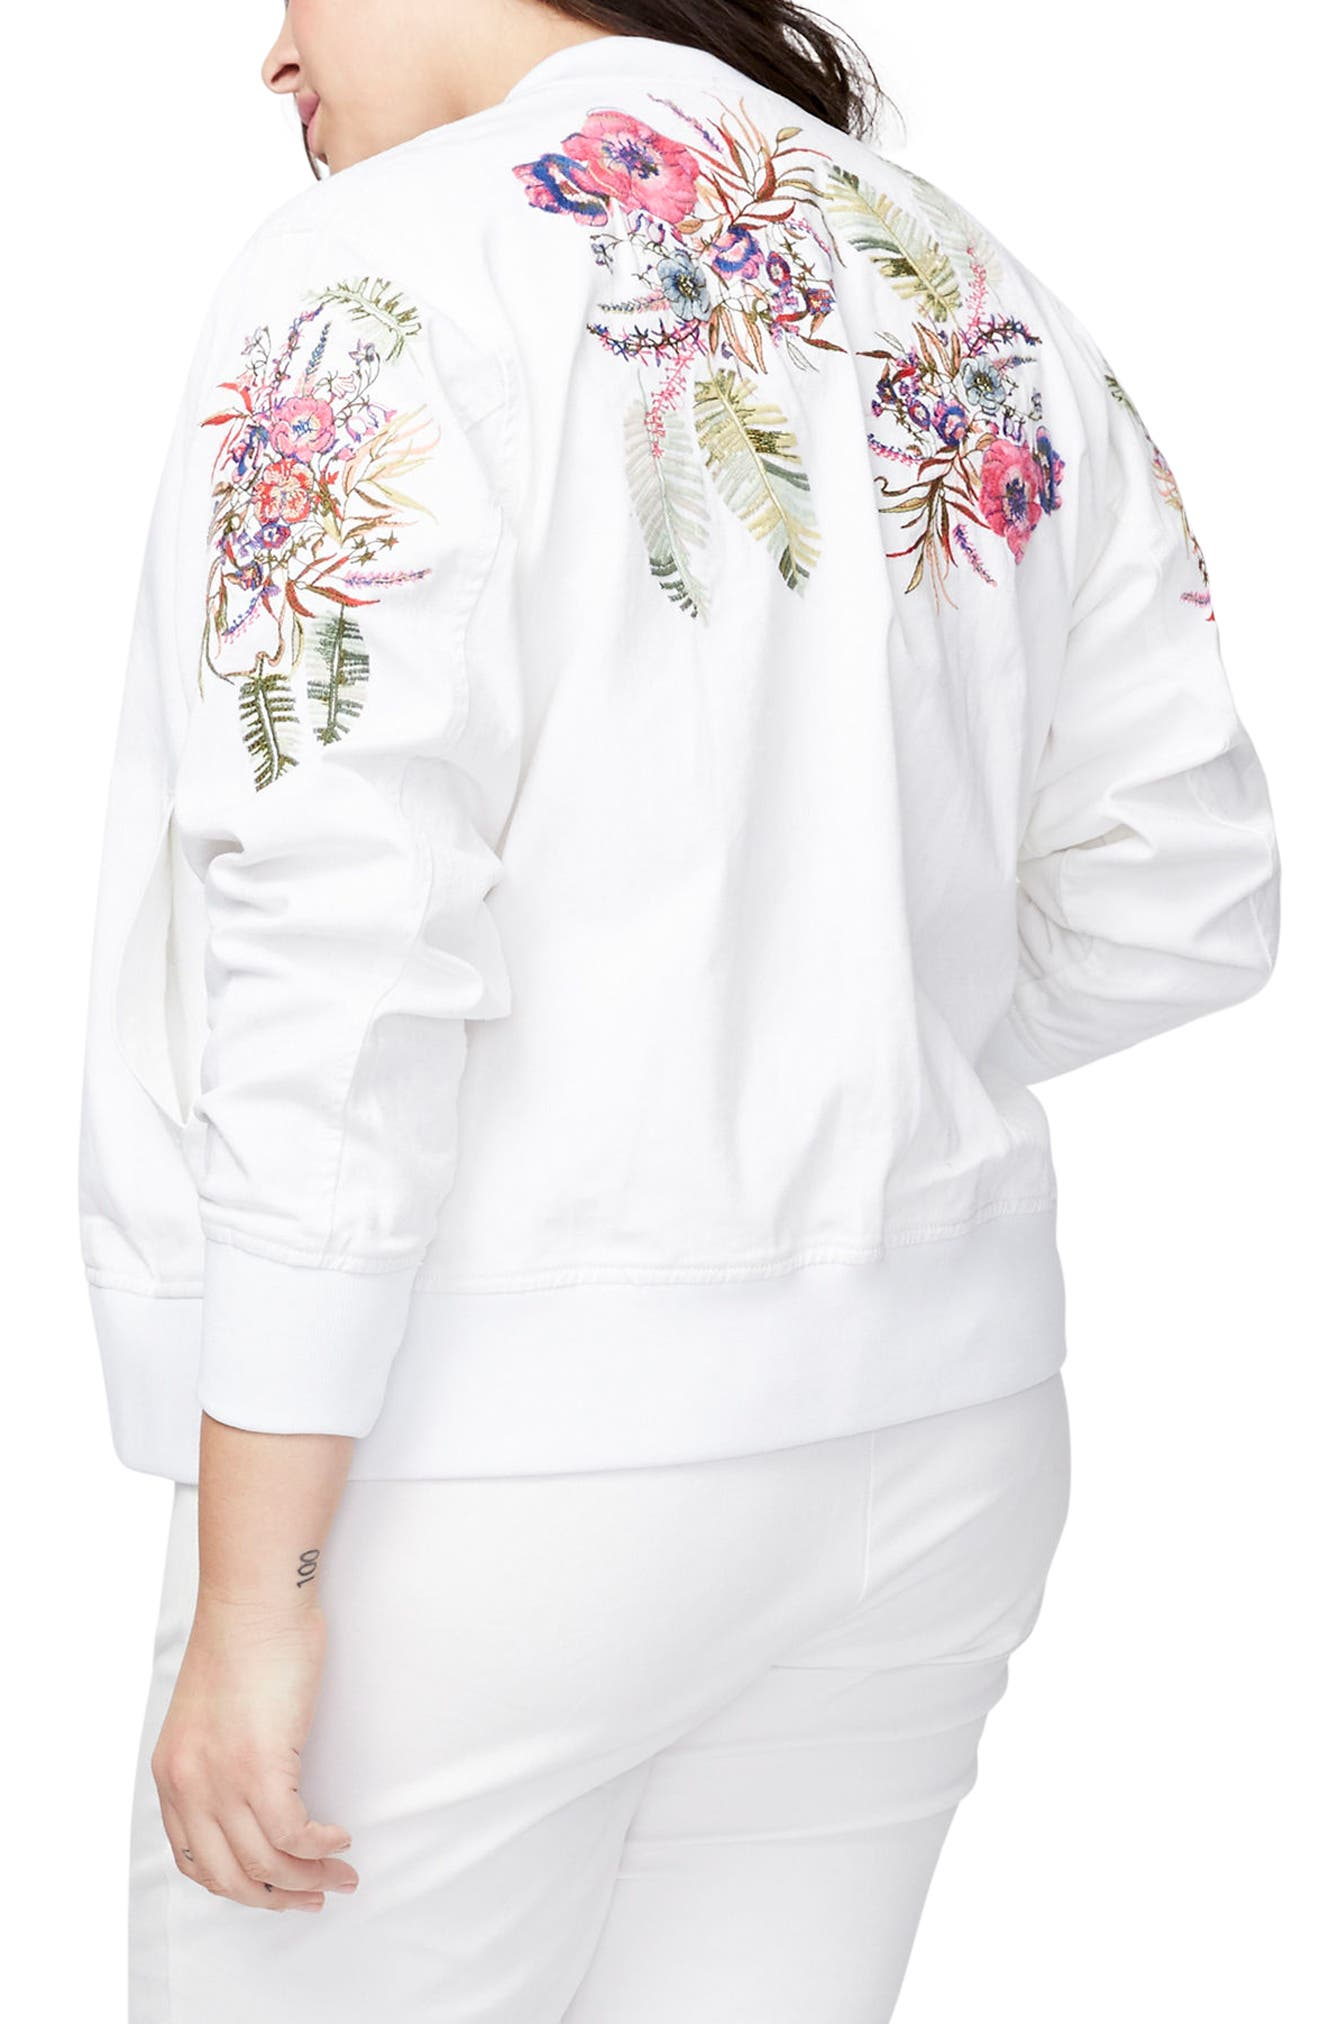 Alternate Image 1 Selected - RACHEL Rachel Roy Embroidered Bomber Jacket (Plus Size)